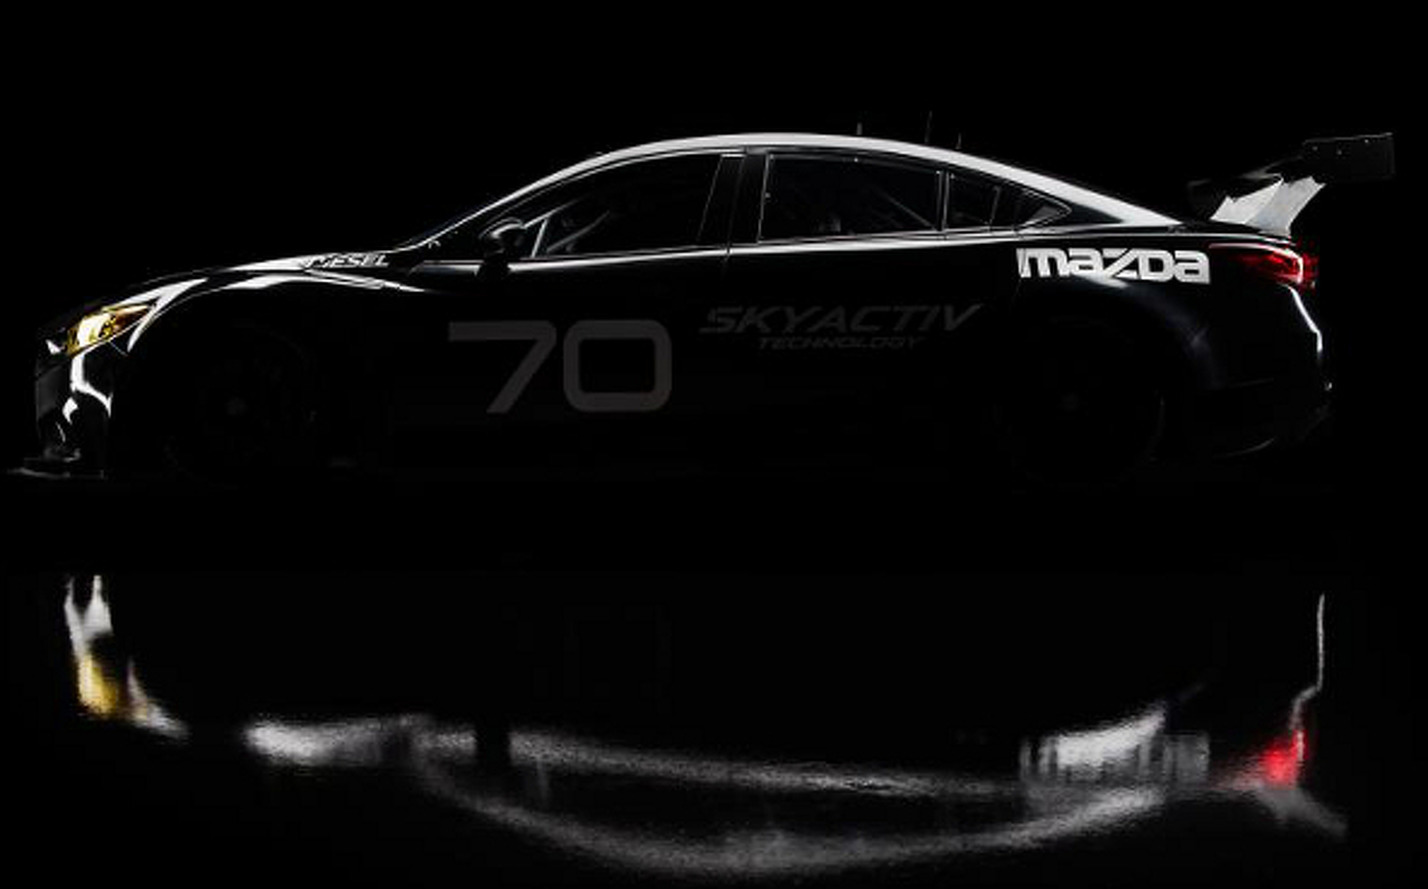 Mazda6 Skyactiv-D Ready to Take on New GX Racing Class